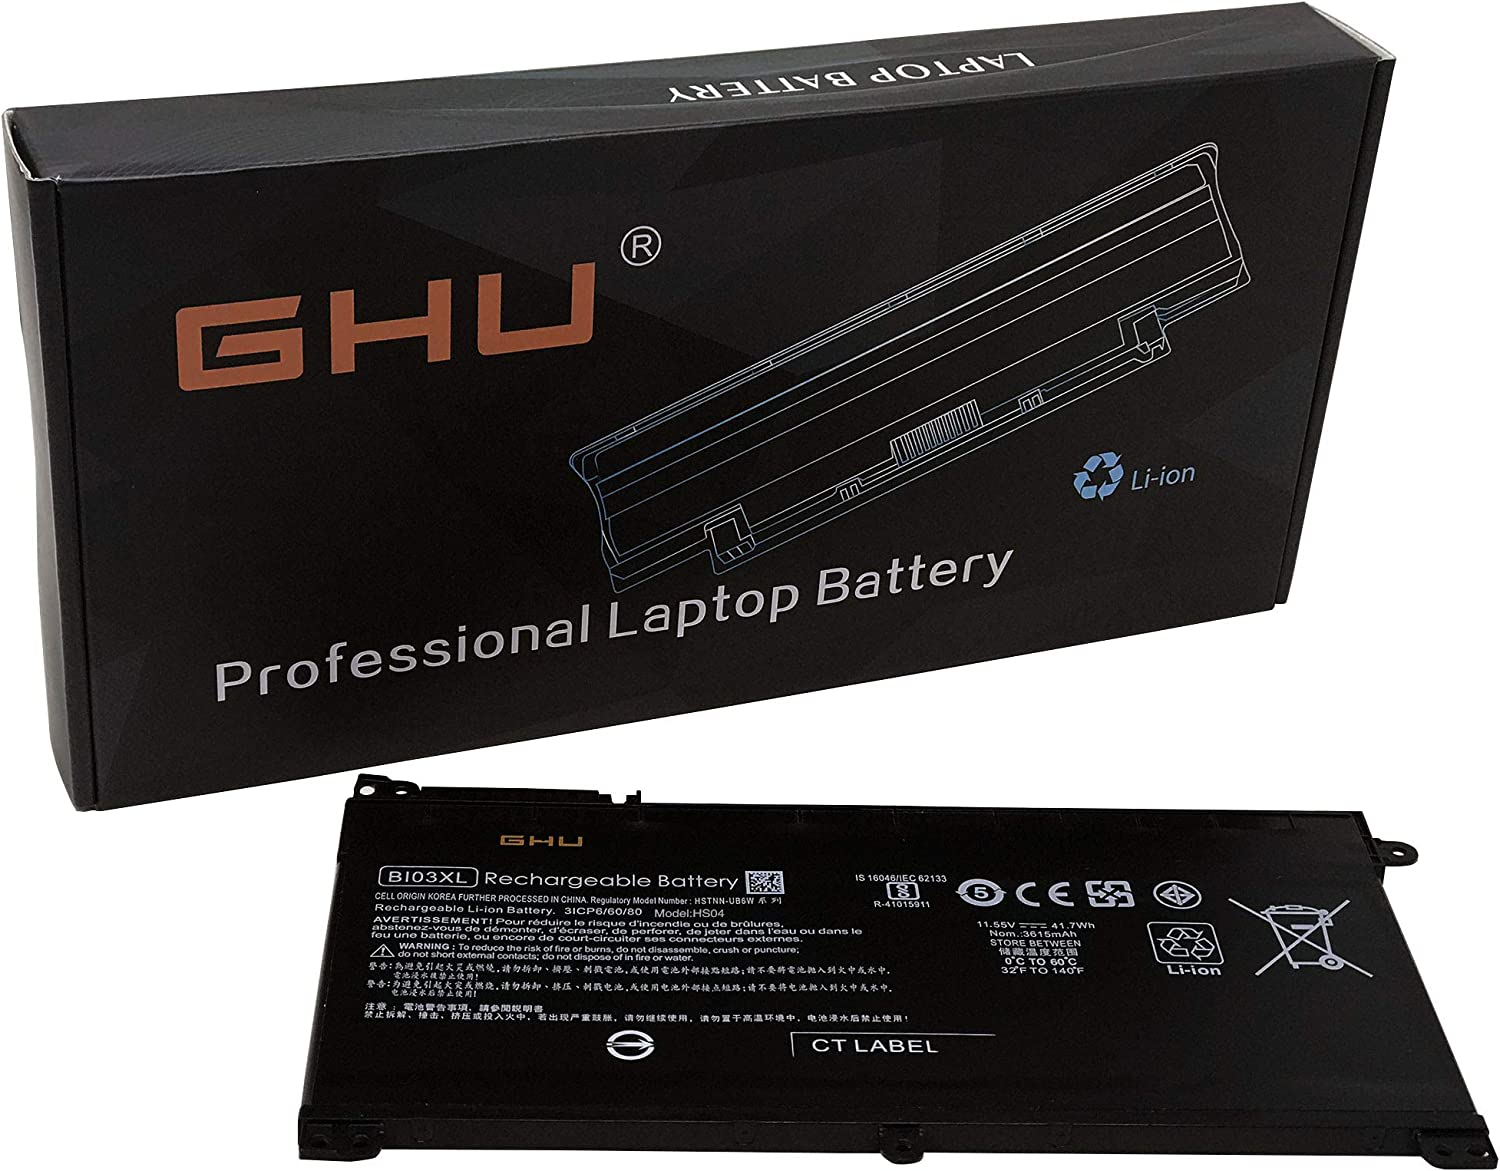 New GHU BI03XL ON03XL Laptop Battery Compatible with HP Pavilion X360 13-U M3-U M3-U001DX M3-U103DX 13-U100TU 13-U100TU Stream 14-AX 14-ax010wm 14-ax020wm 14-ax030wm Series HSTNN-UB6W 41.7Wh 11.55V